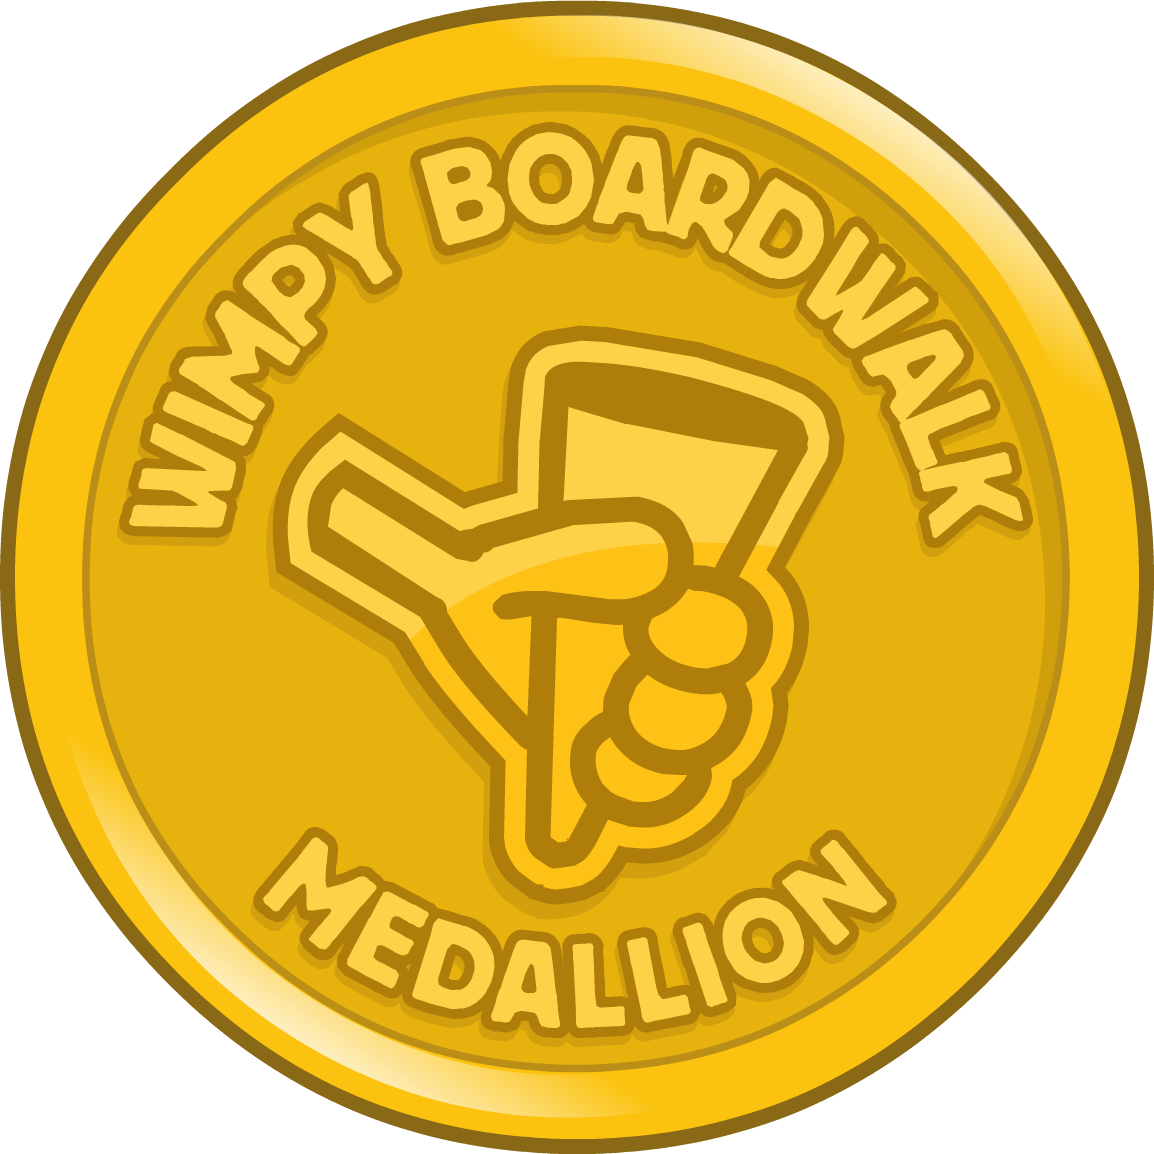 Wimpy Boardwalk Medallion